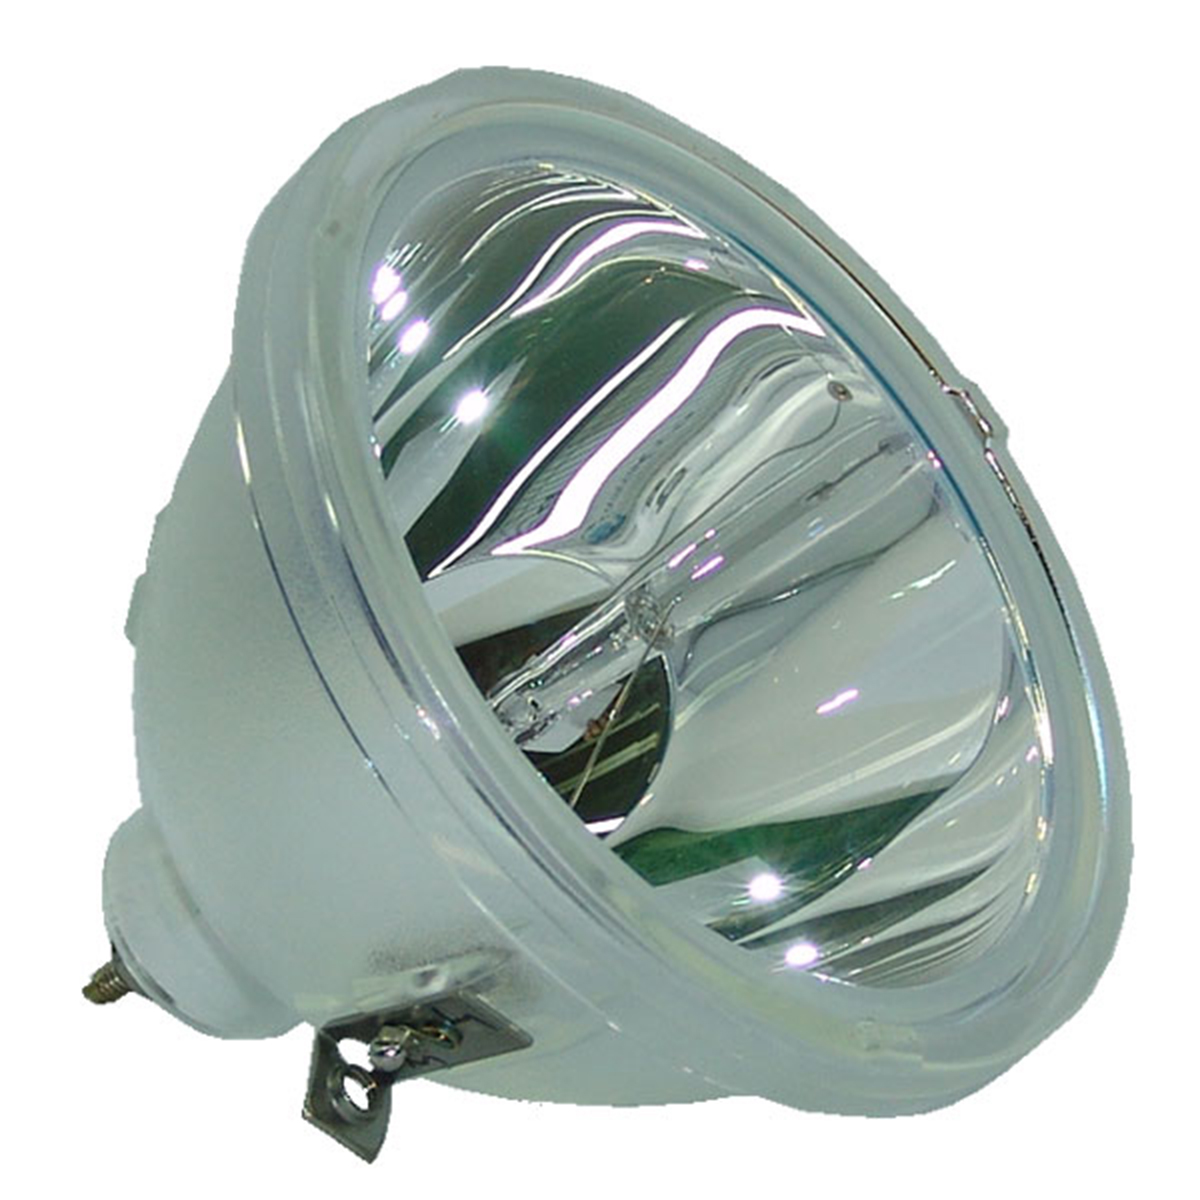 Original Philips TV Lamp Replacement with Housing for RCA HD50LPW163YX2(H) - image 1 de 5